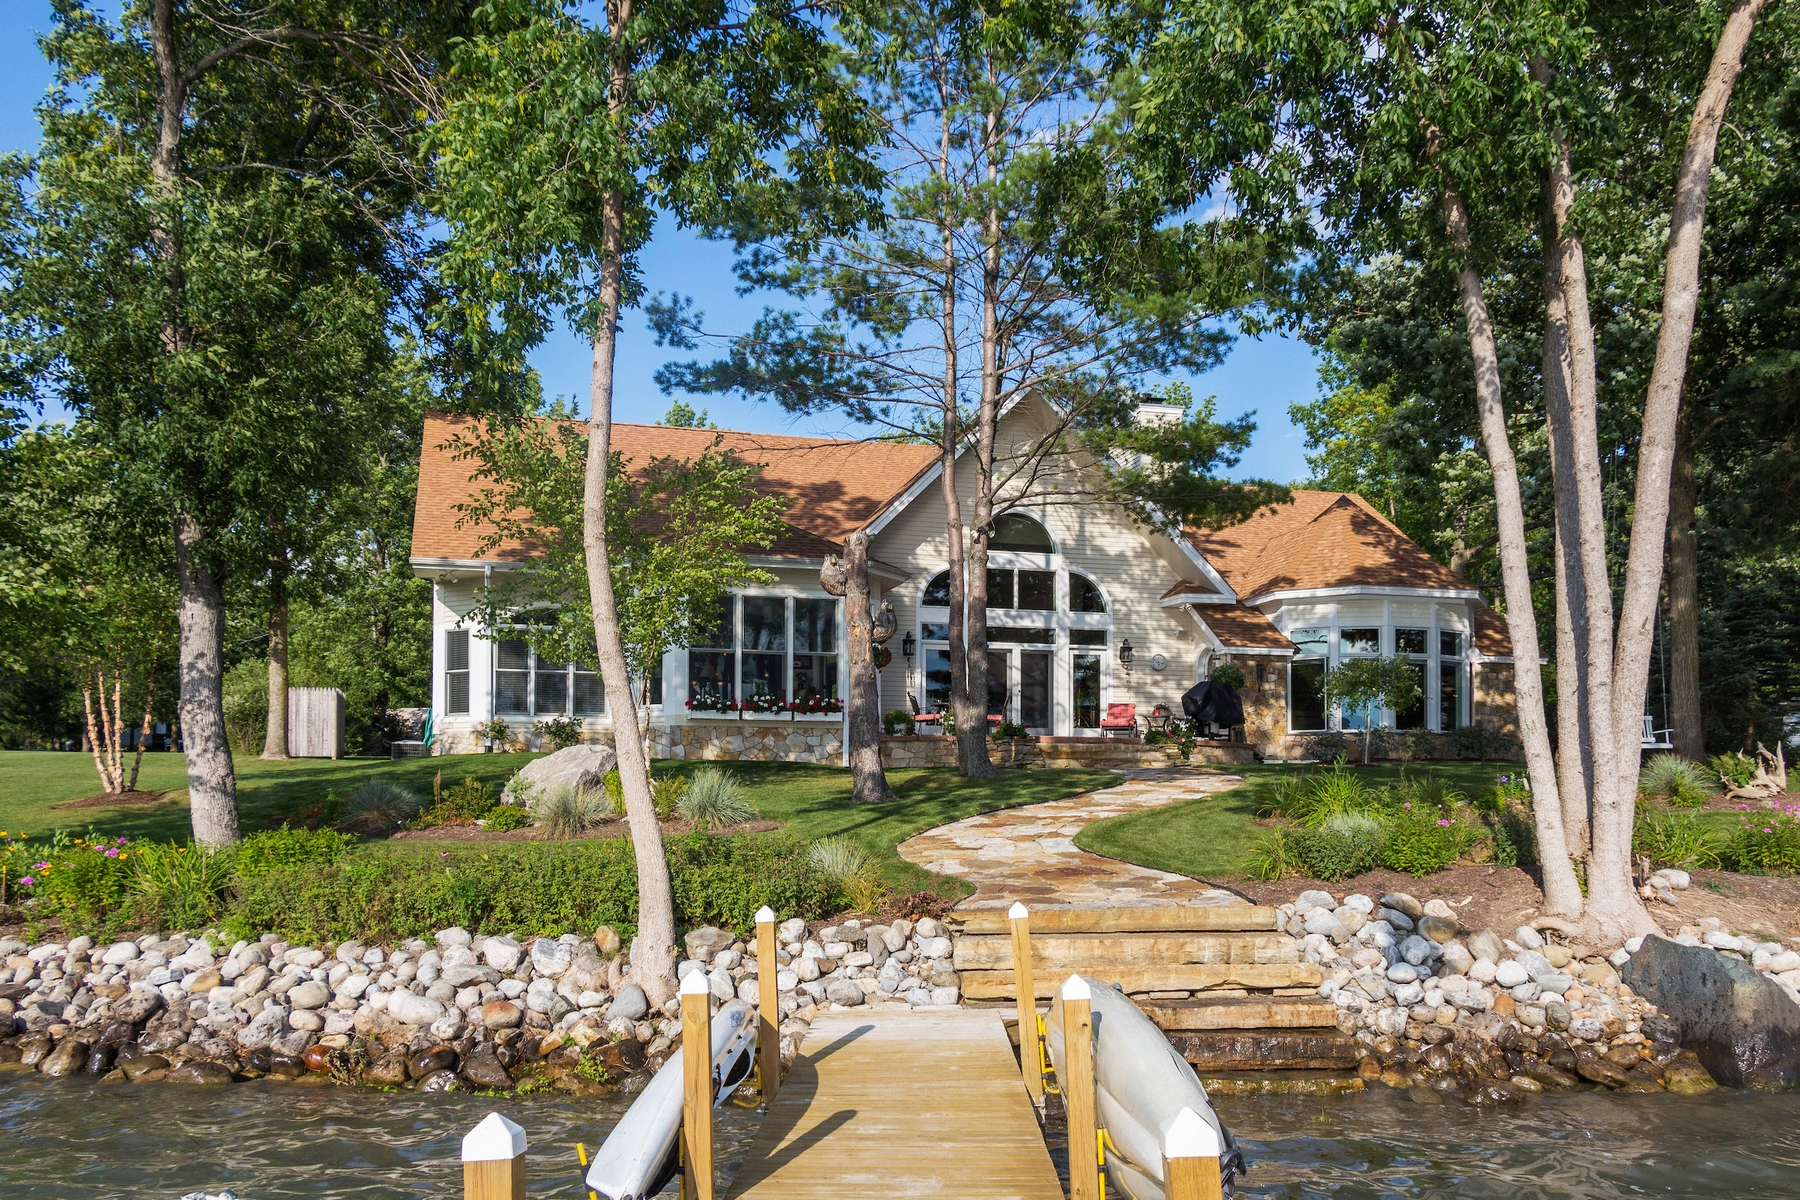 단독 가정 주택 용 매매 에 Custom Waterfront Home on Lake George 212 Black Point Road Ticonderoga, 뉴욕 12883 미국